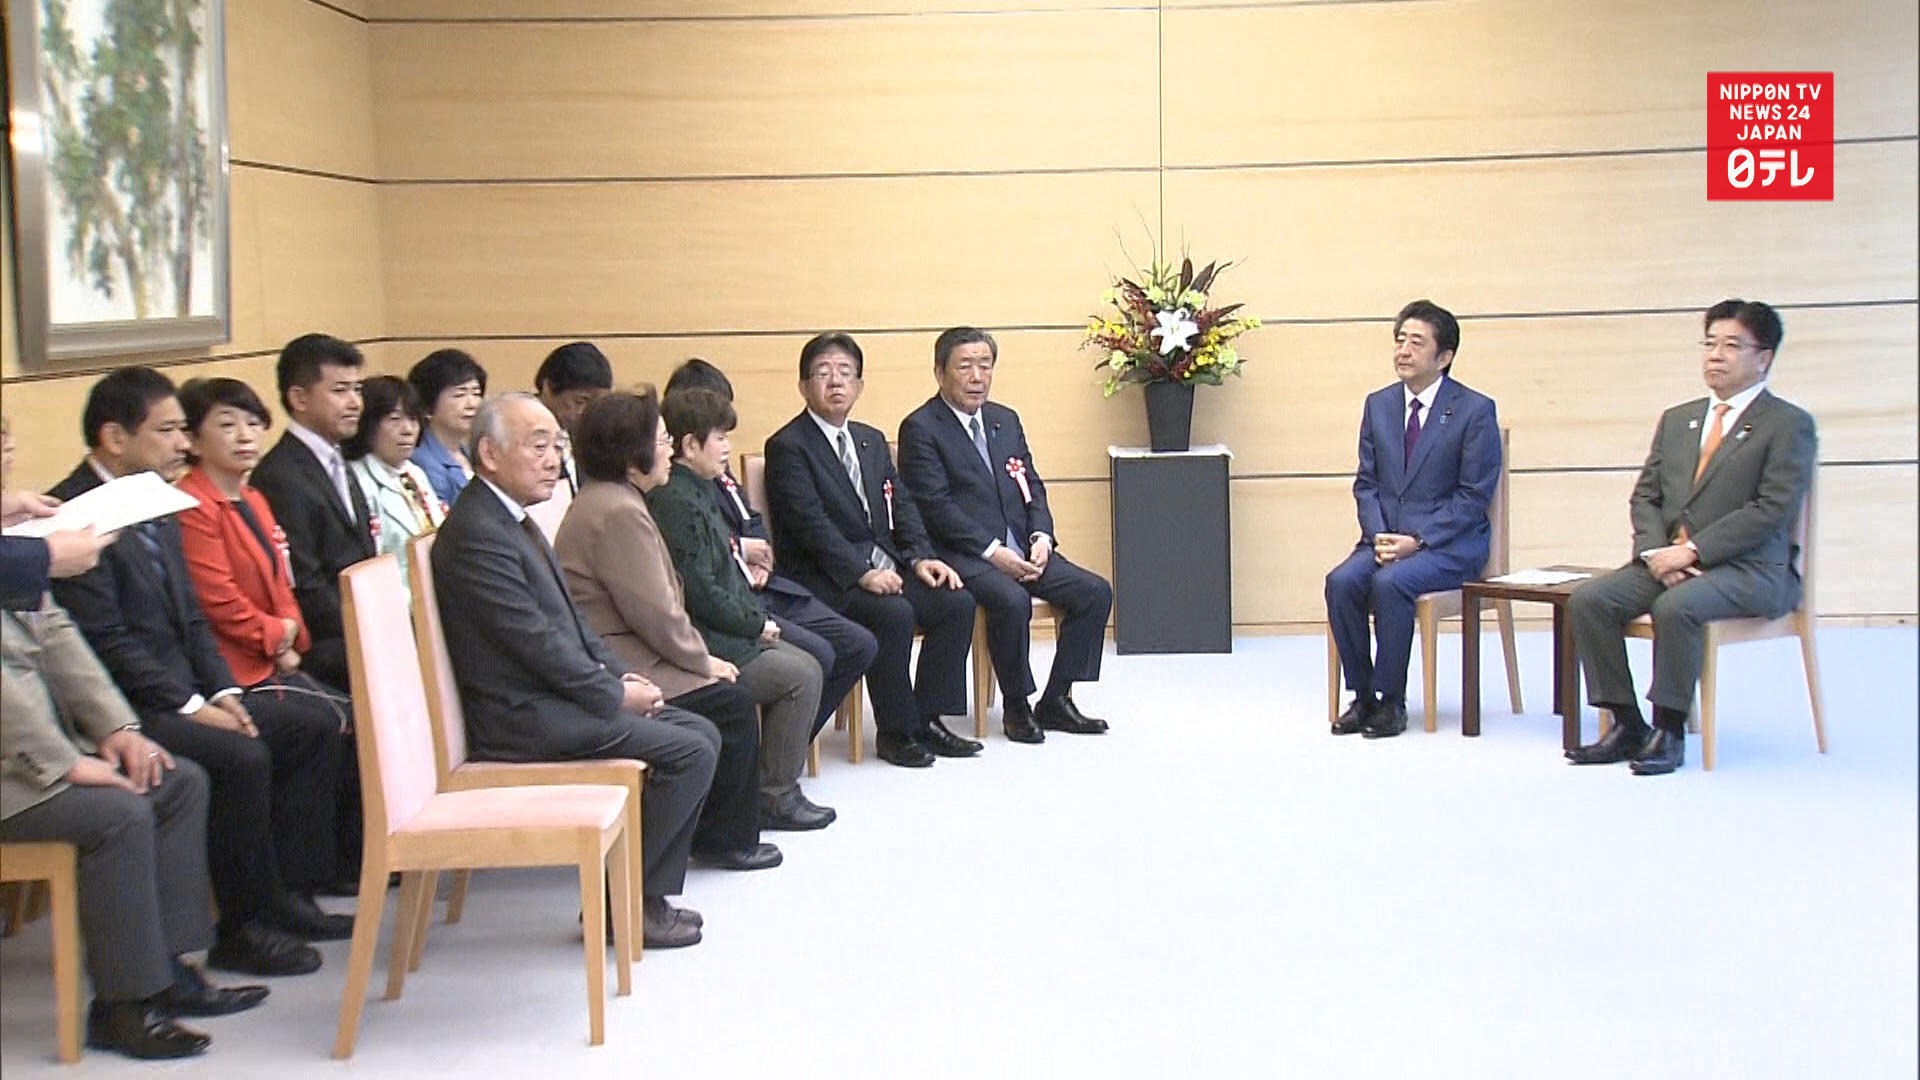 PM Abe meets with families of former leprosy patients